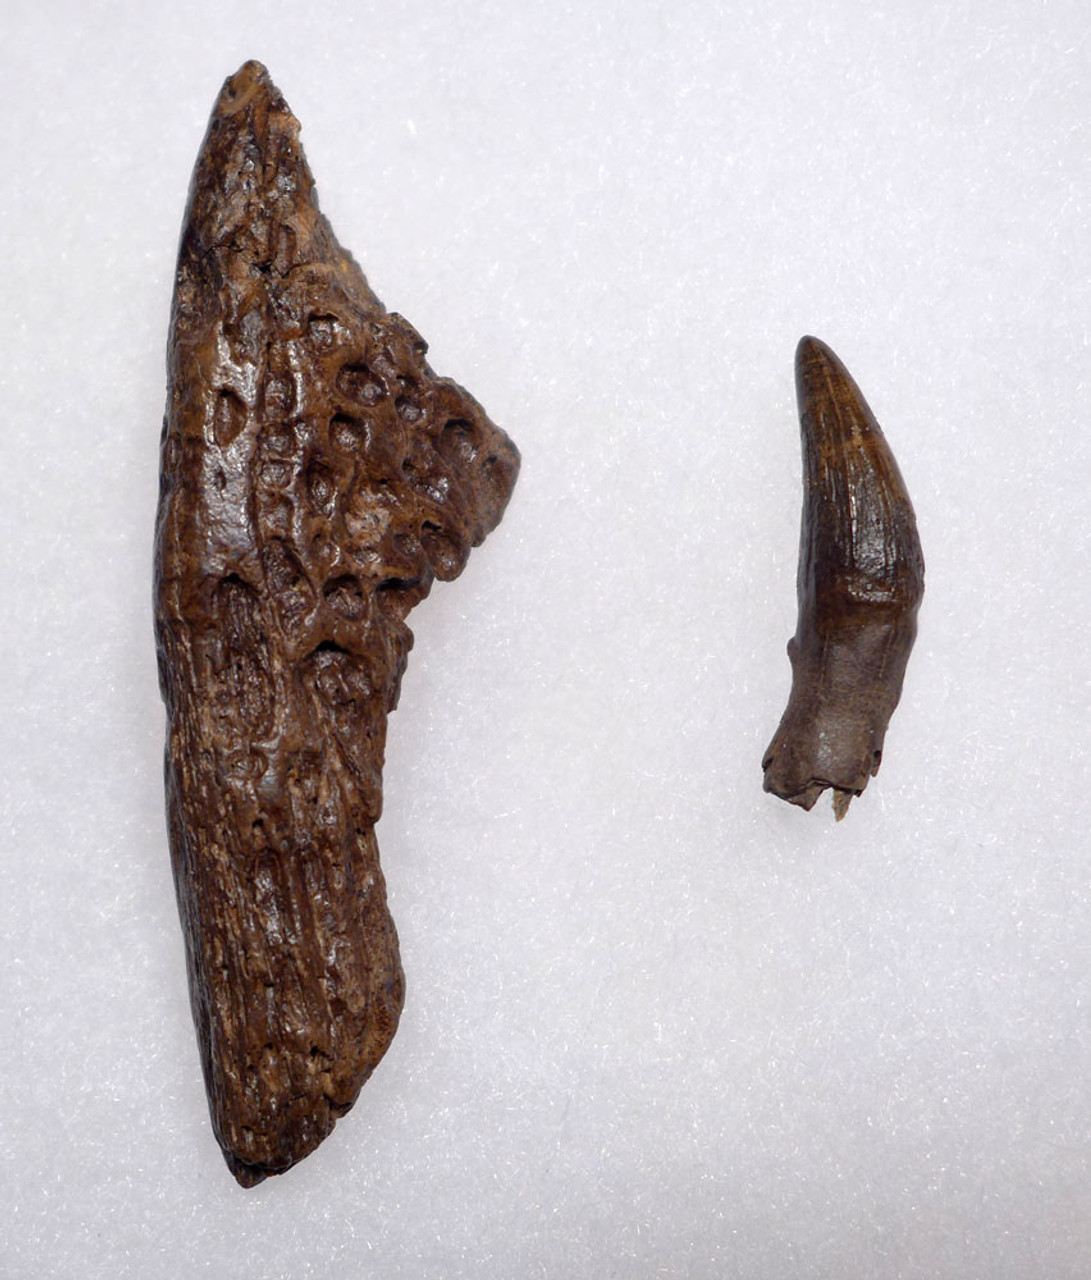 DINOSAUR-ERA FOSSIL LEIDYOSUCHUS CROCODILE TOOTH WITH JAW FRAGMENT FROM HELL CREEK  *CROC086